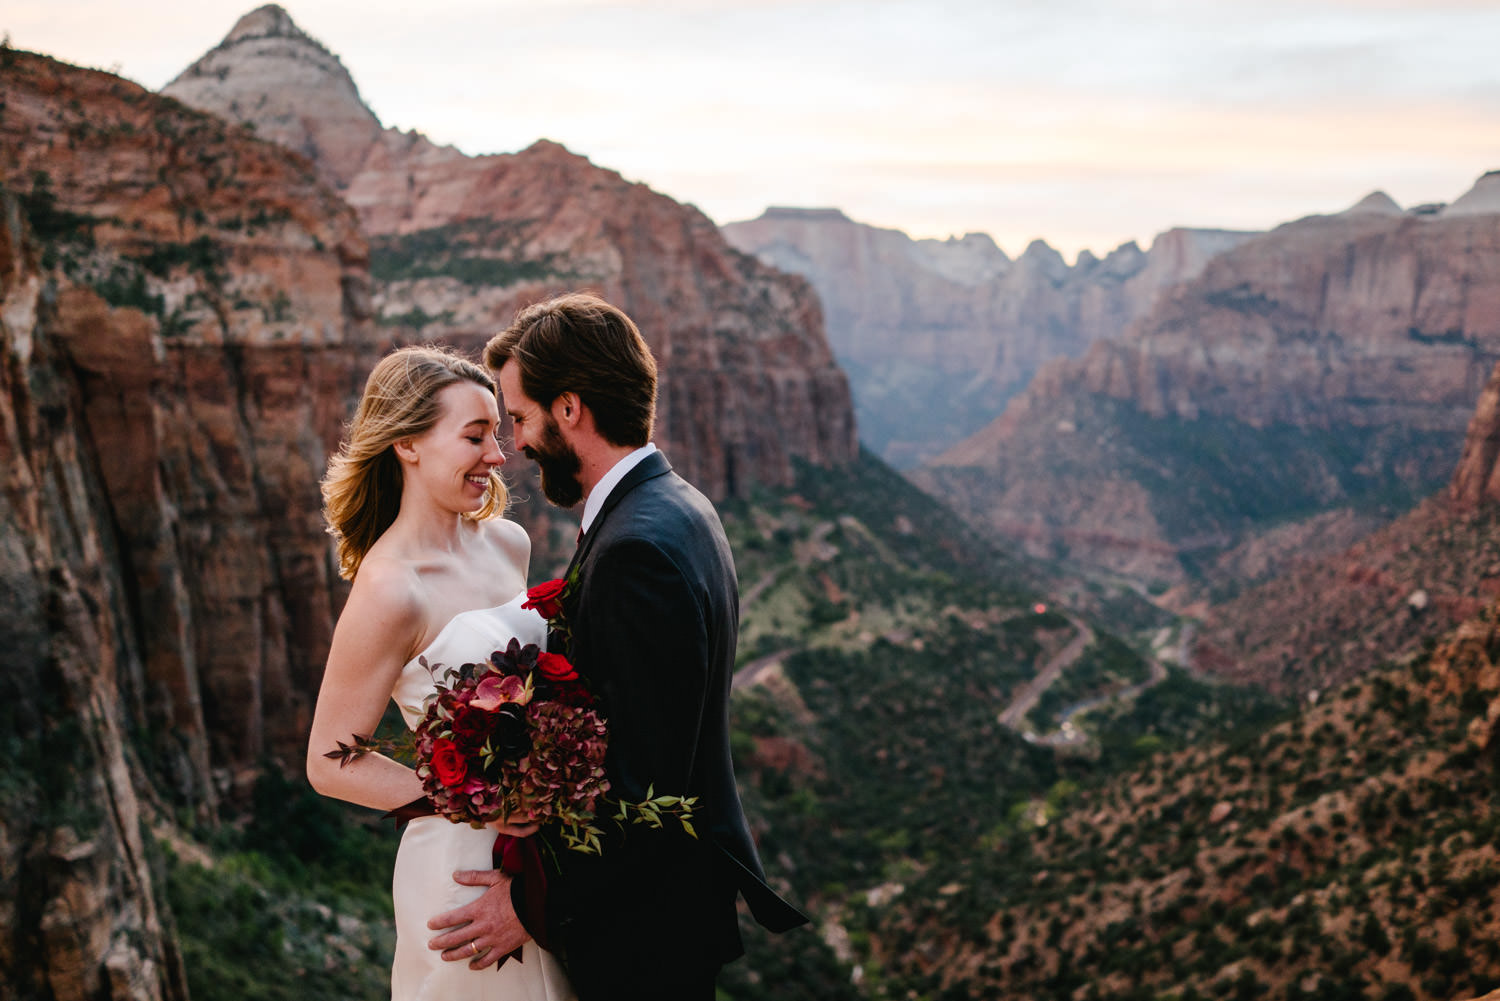 zionnationalpark_utah_destinationweddingphotographer_austendiamondphotography-16